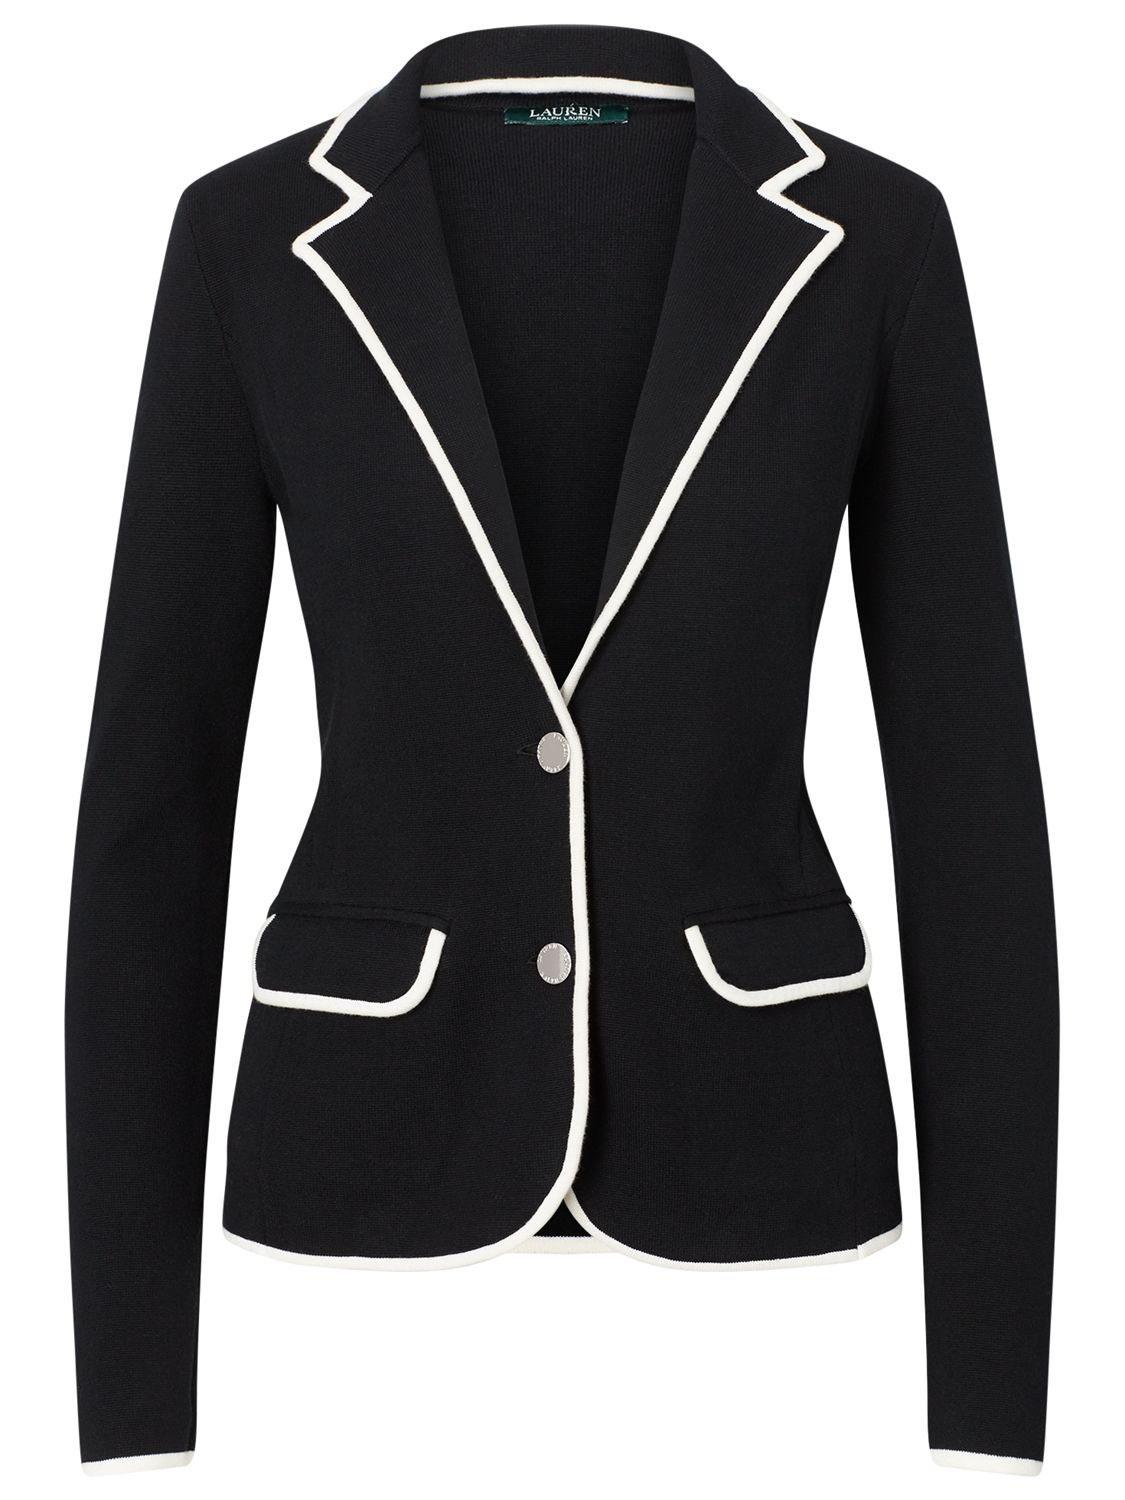 Lauren Ralph Lauren Lauren Ralph Lauren Stretch Cotton Sweater Blazer, Polo Black/Herbal Milk